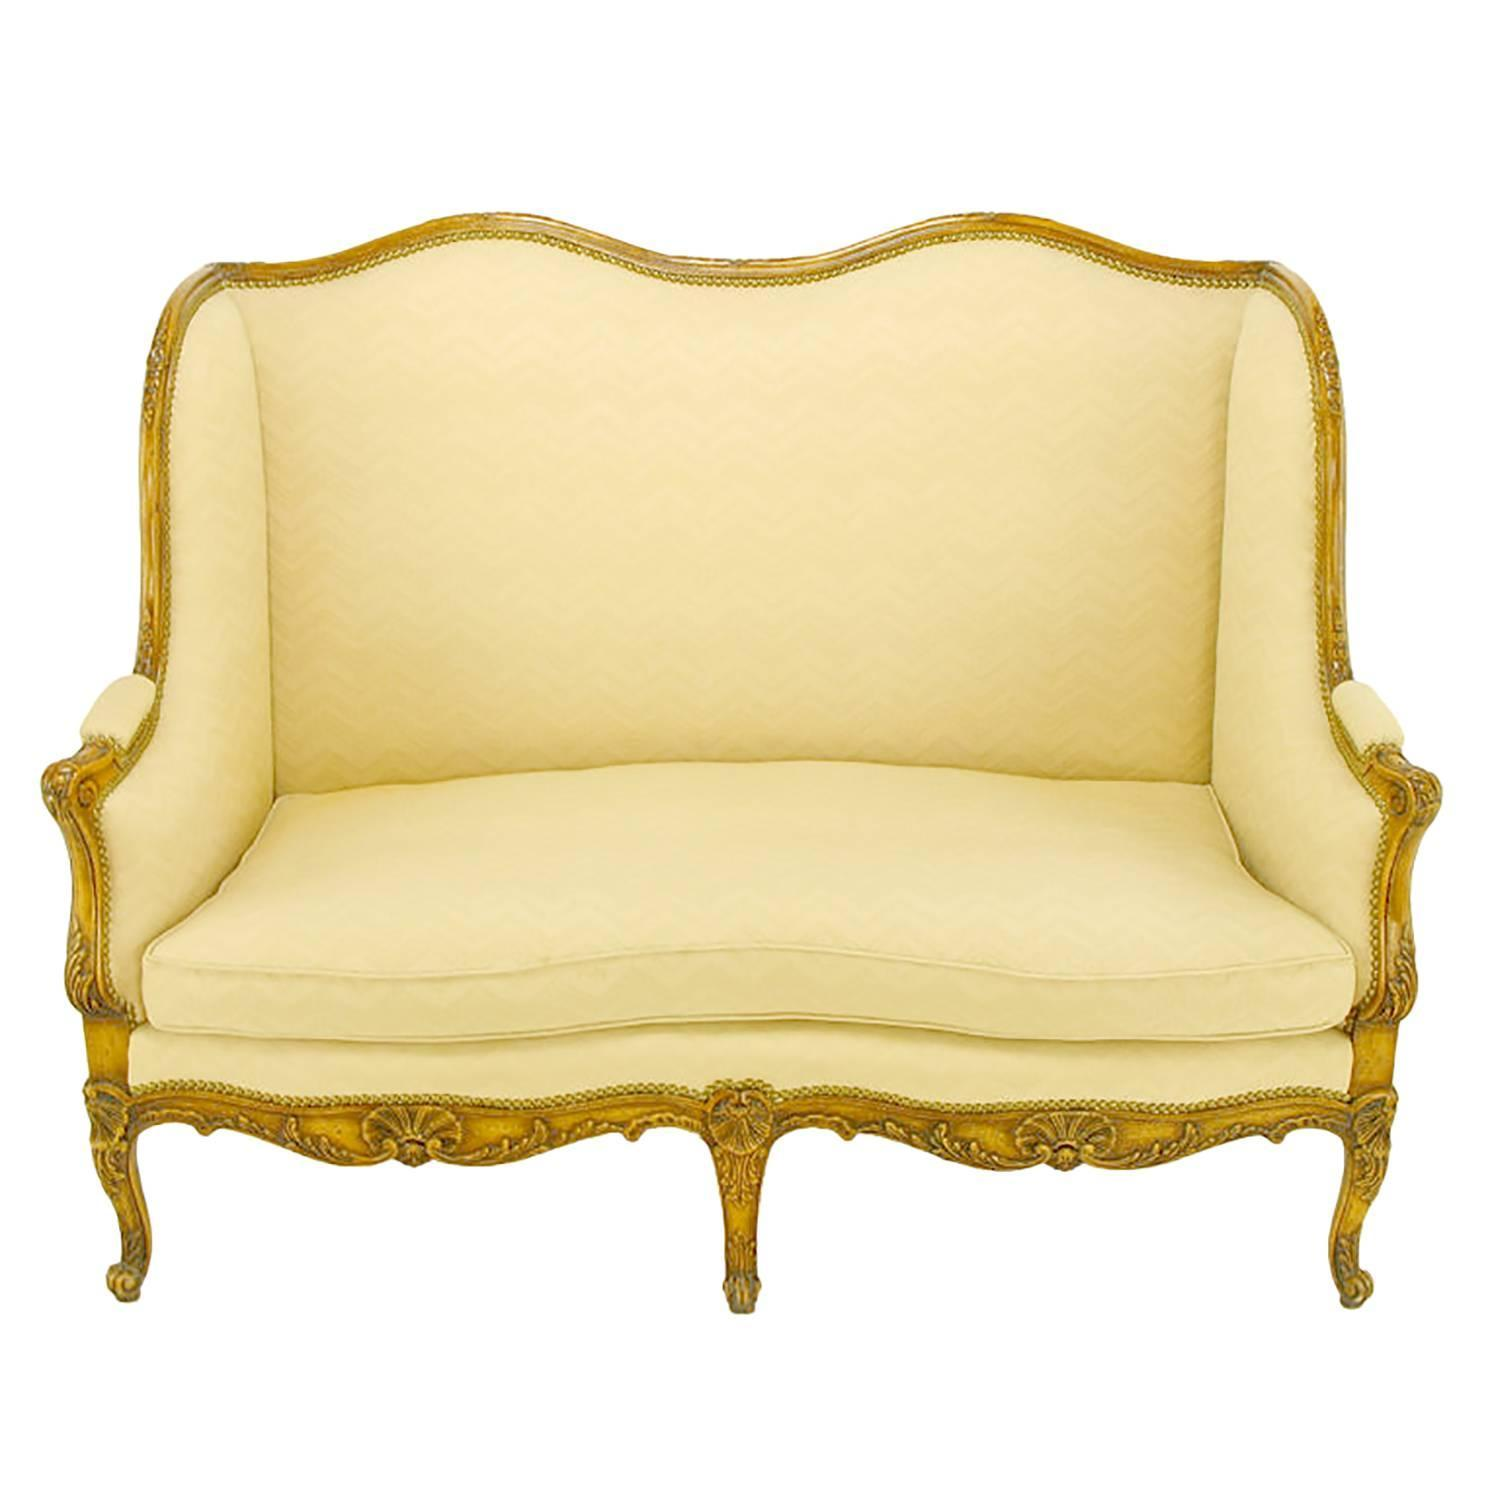 Yale burge louis xv wingback settee for sale at 1stdibs for Settees for sale